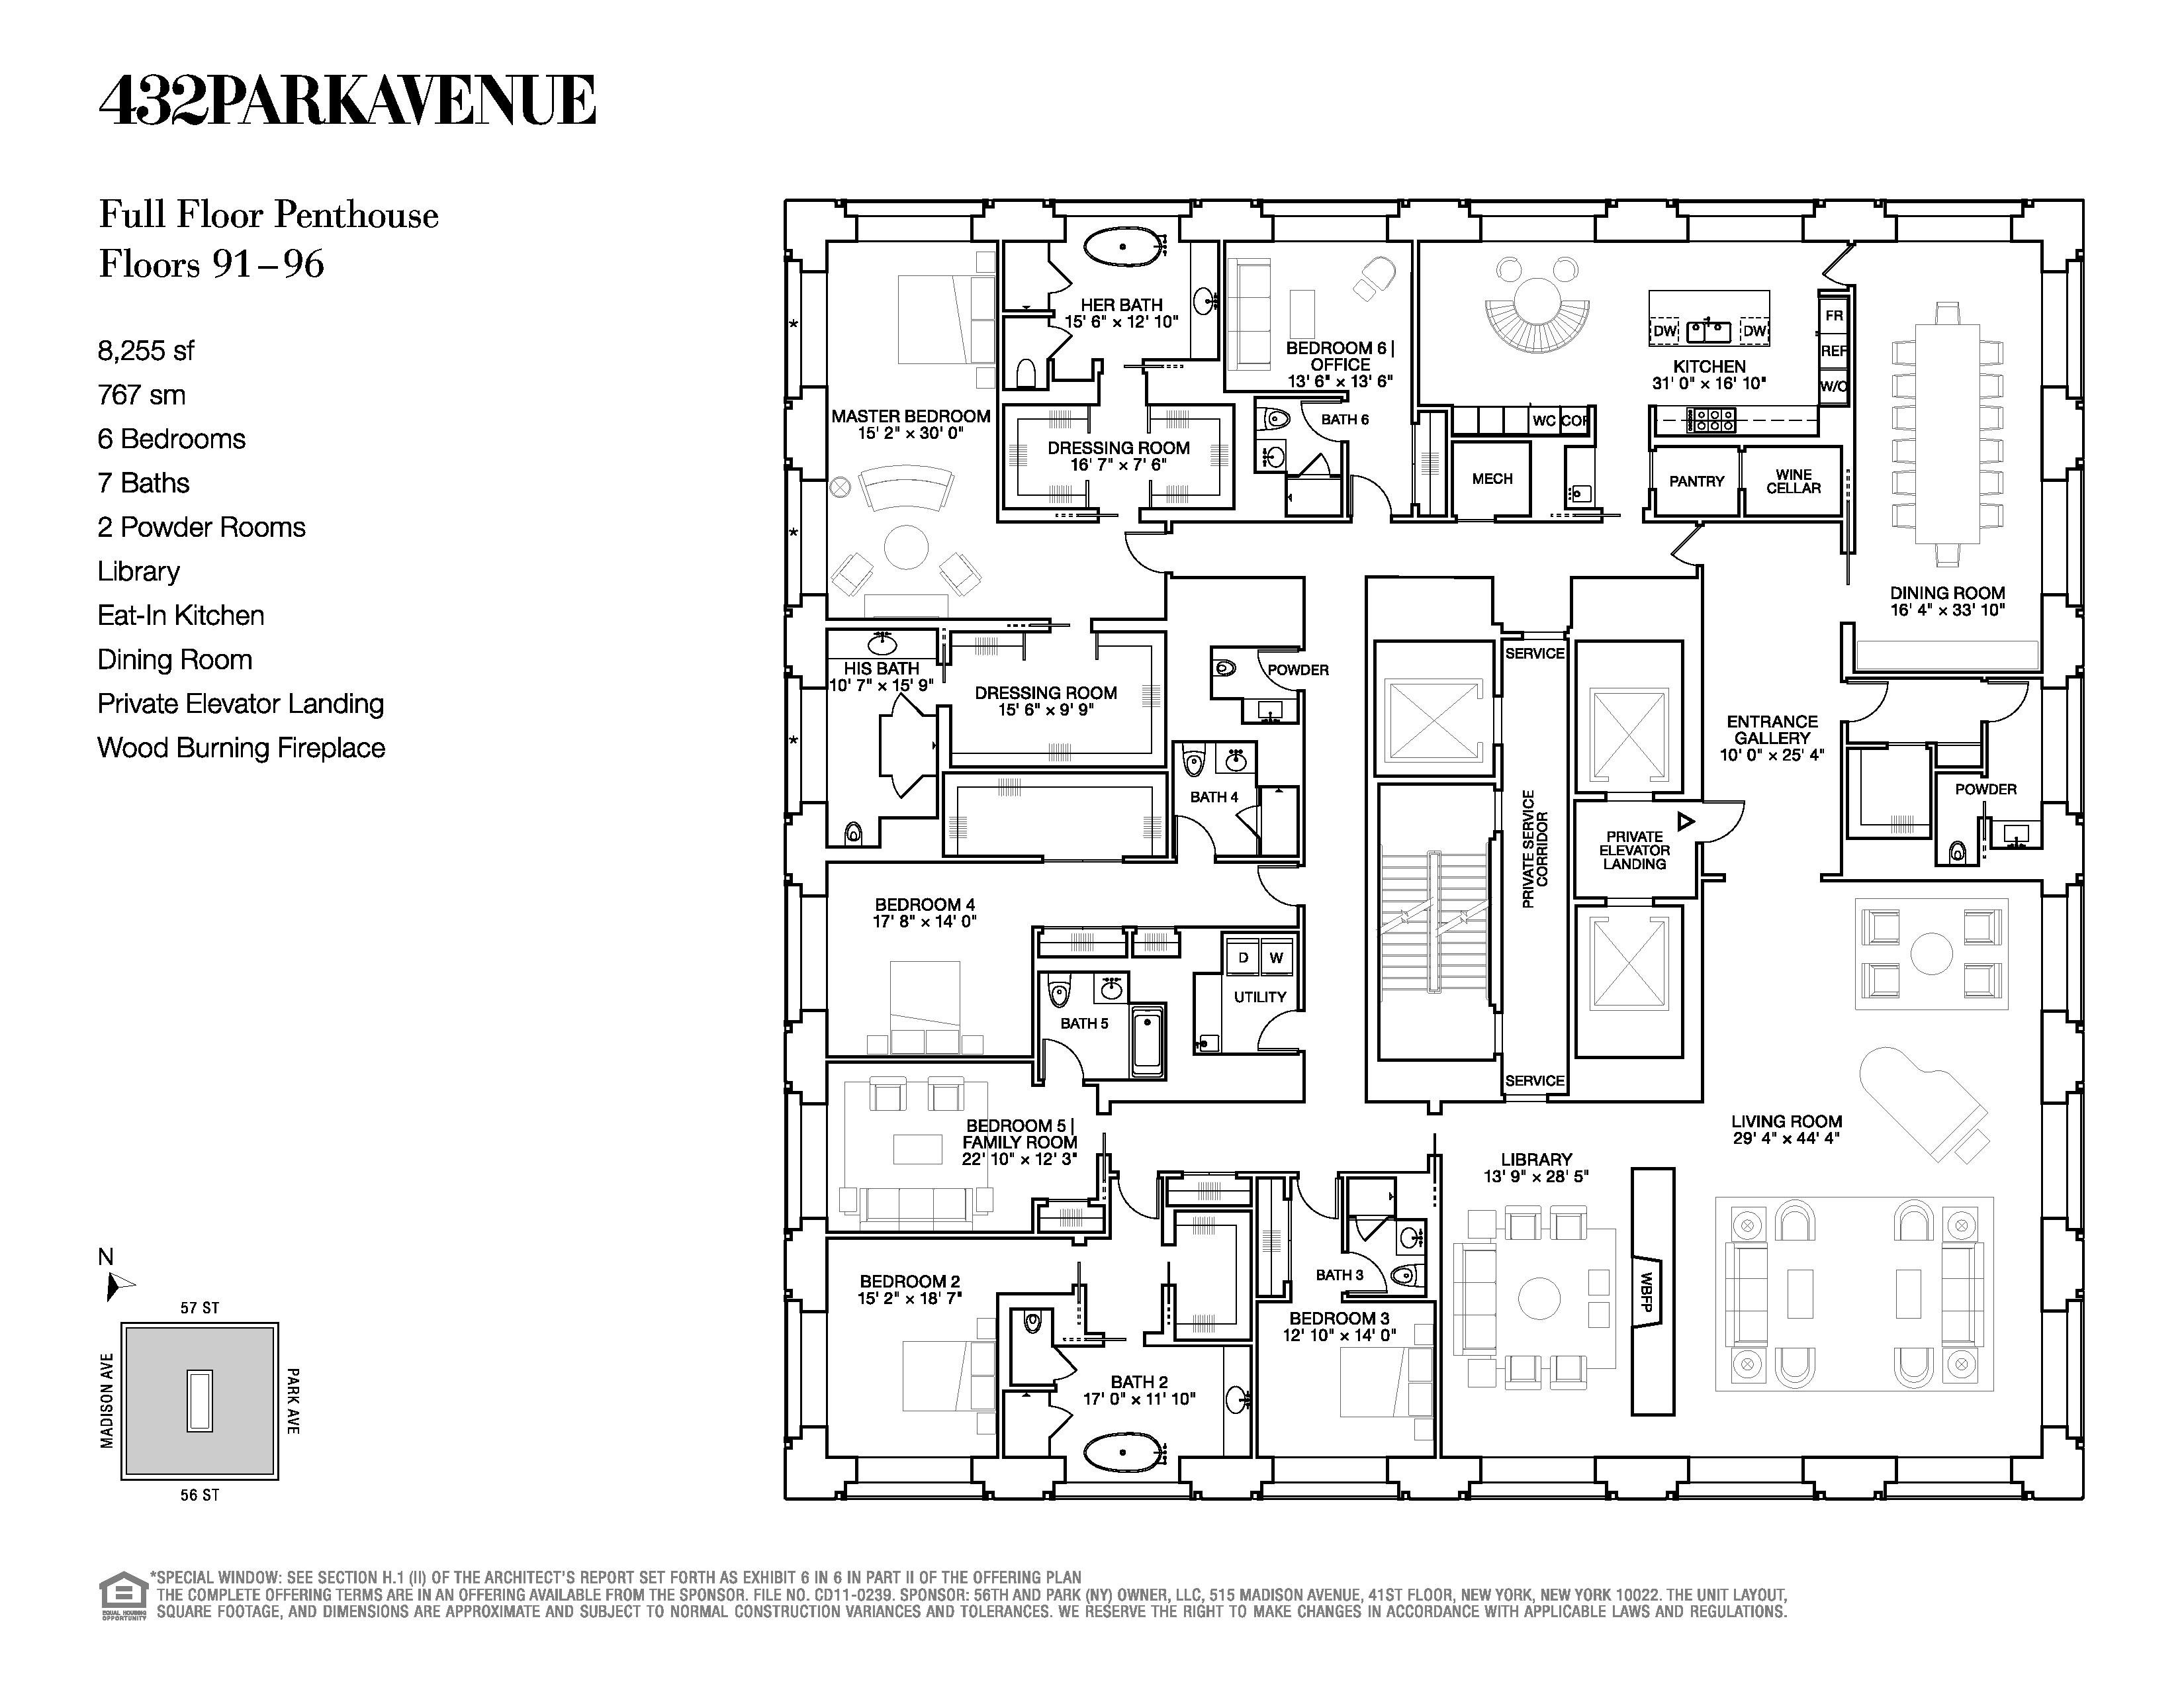 Mansion On My Corner also Co Op City Apartments Two Bedroom Floor Plans as well One57 Floor Plan likewise One 57 New York Floor Plans further Icon Brickell Floor Plans. on carnegie 57 floor plans